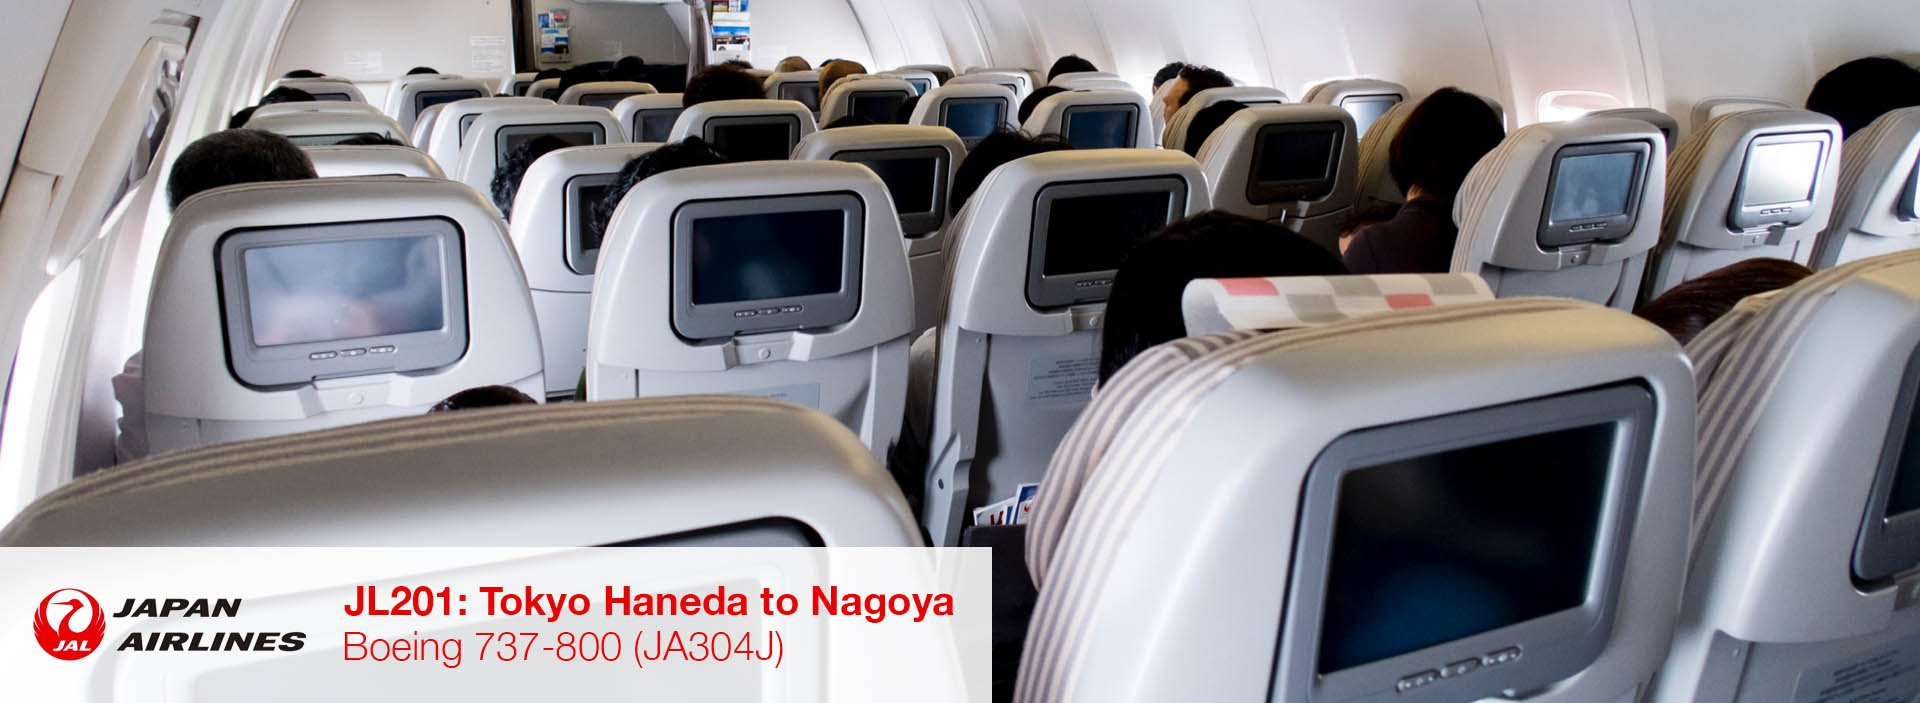 Review: JAL 737-800 Domestic Economy Class from Tokyo Haneda to Nagoya